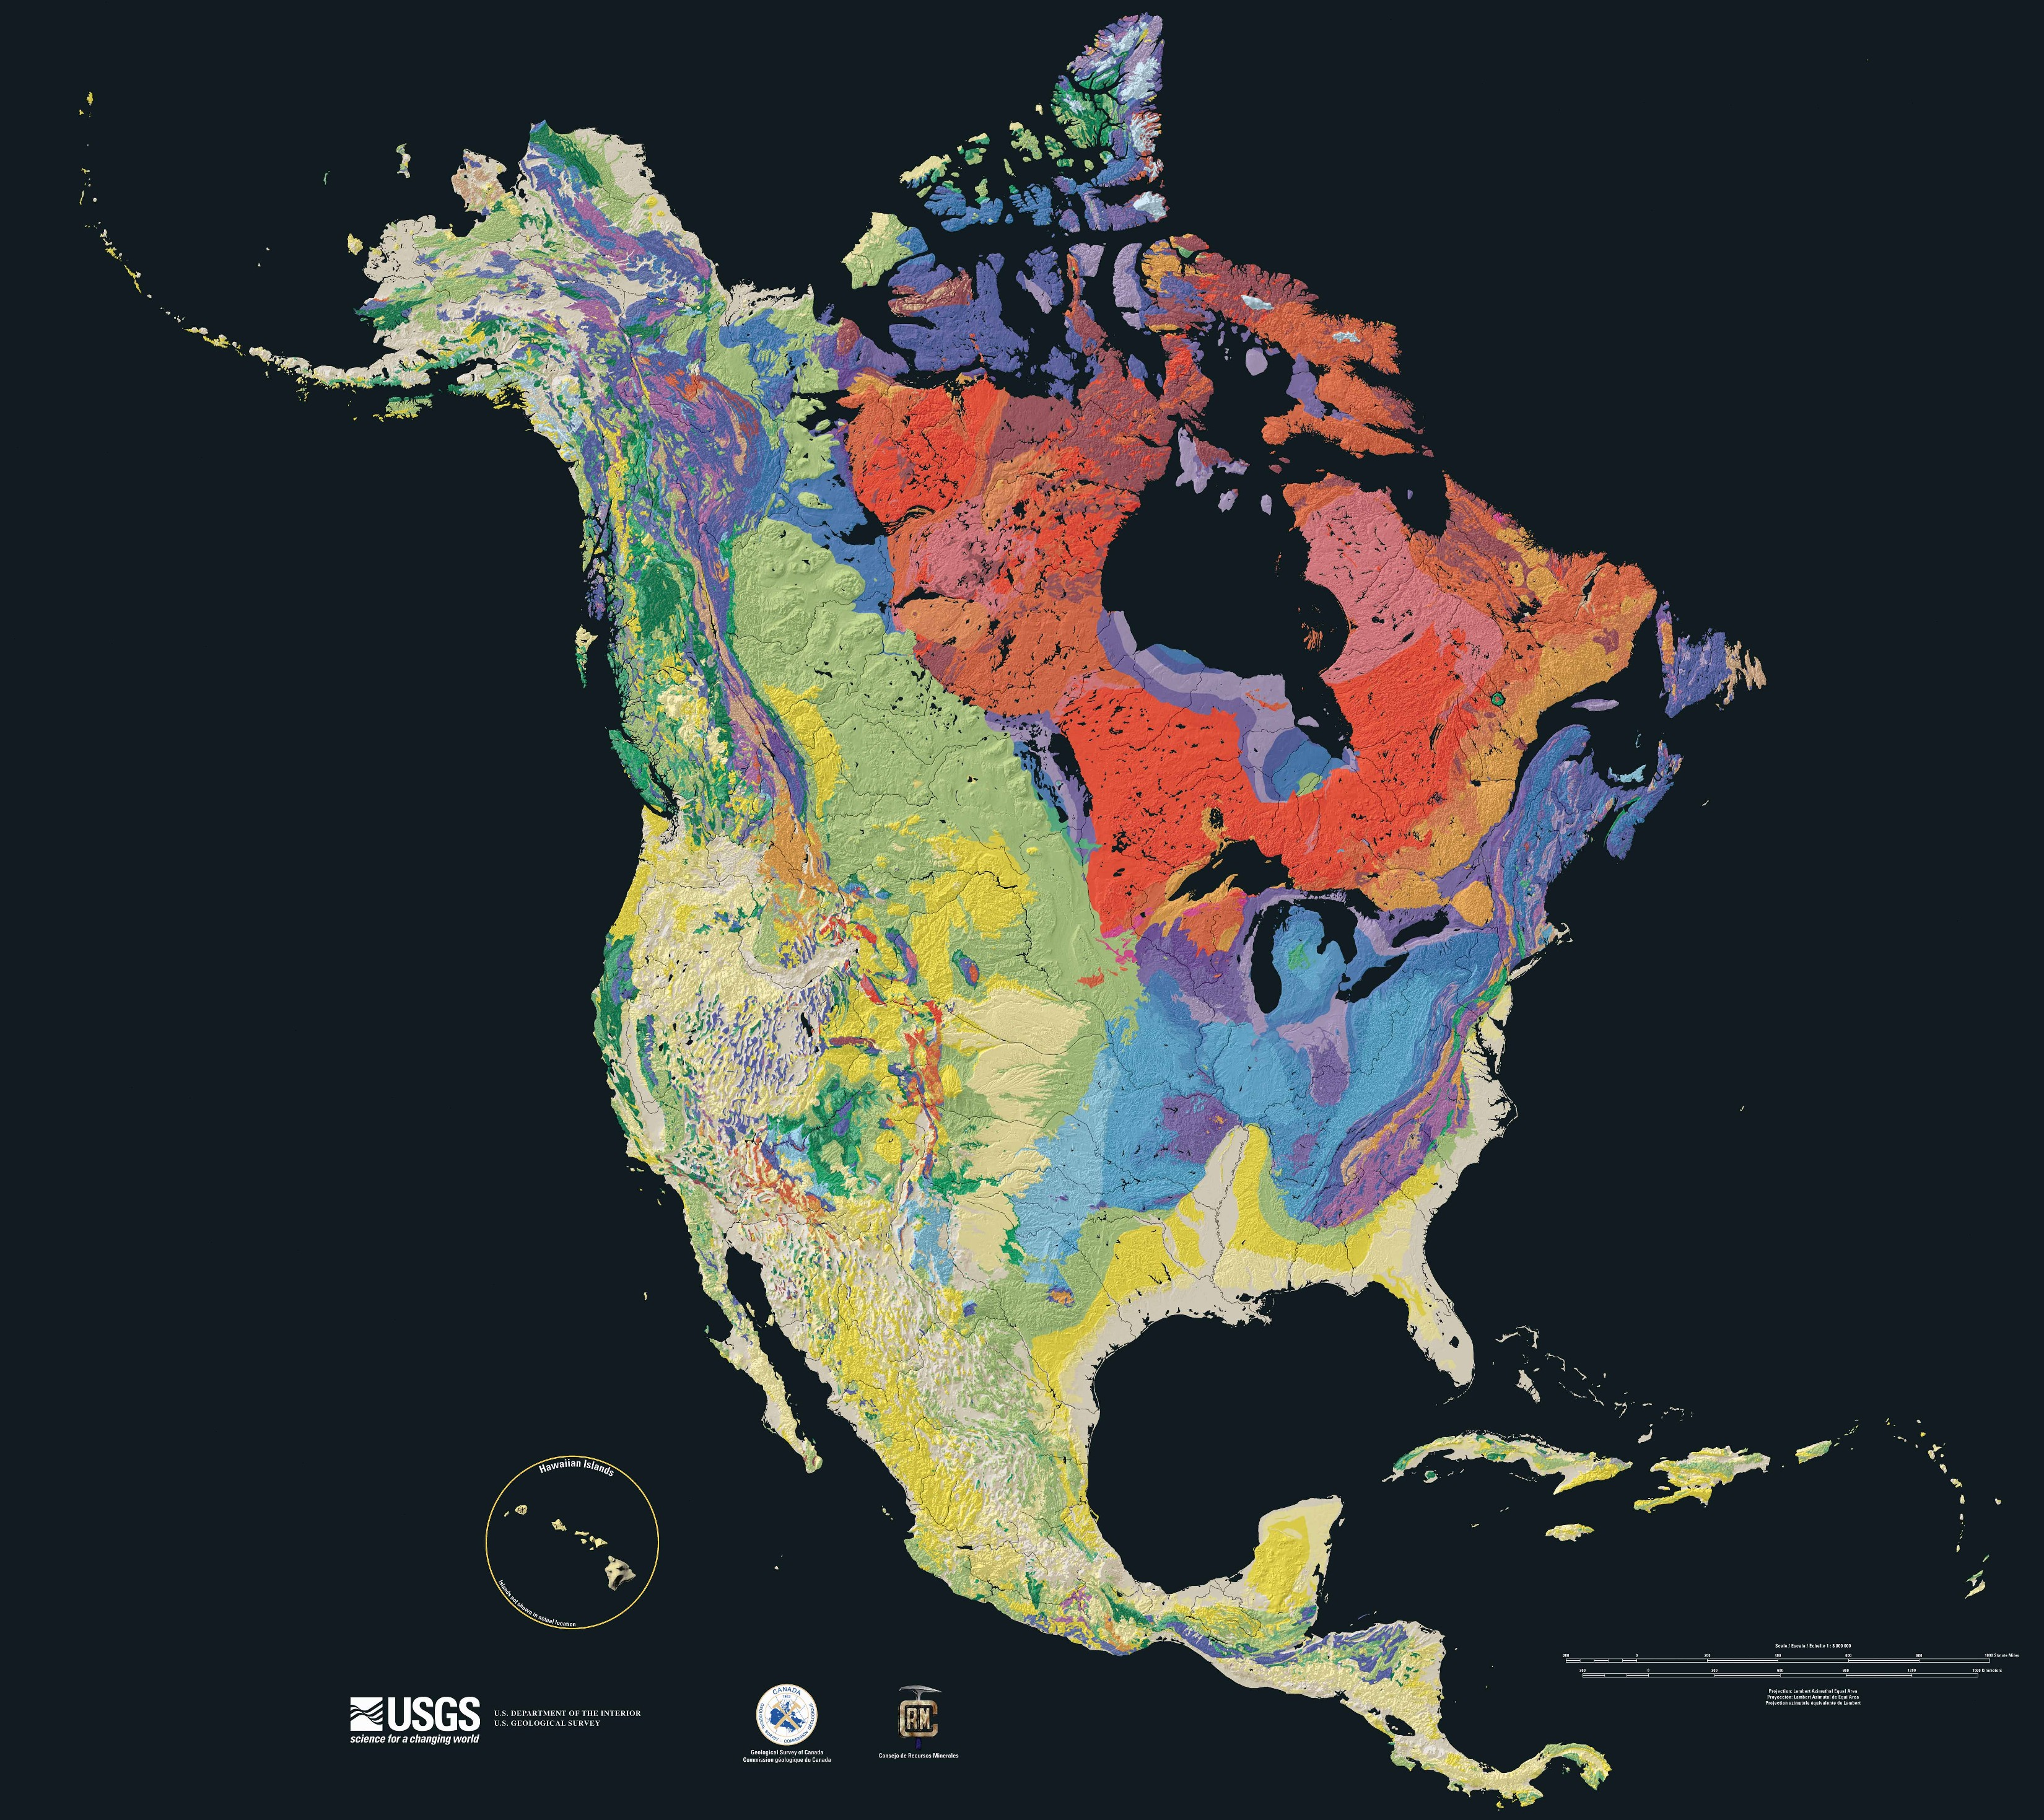 Datei:North america terrain 2003 map.jpg – Wikipedia